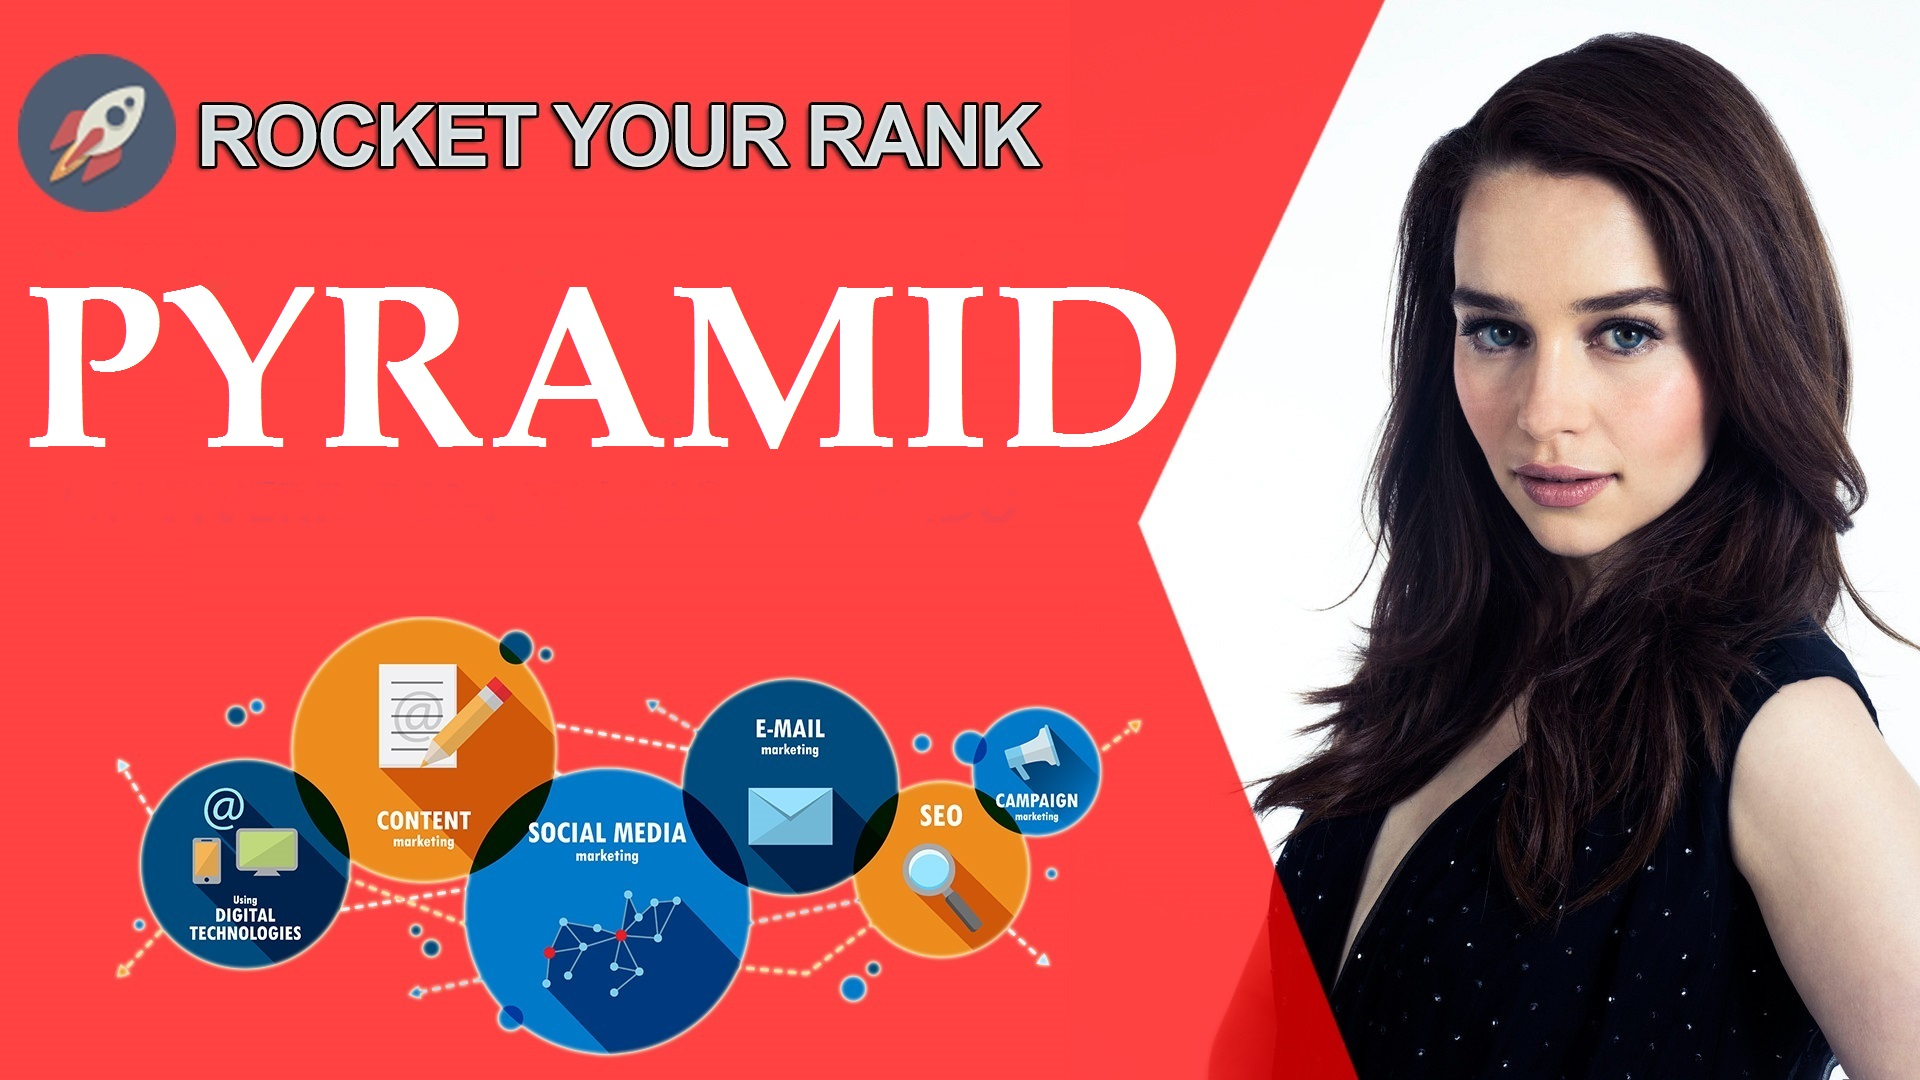 Mega SEO CyberLink Pyramid Boost Your Website Ranking For Google Top